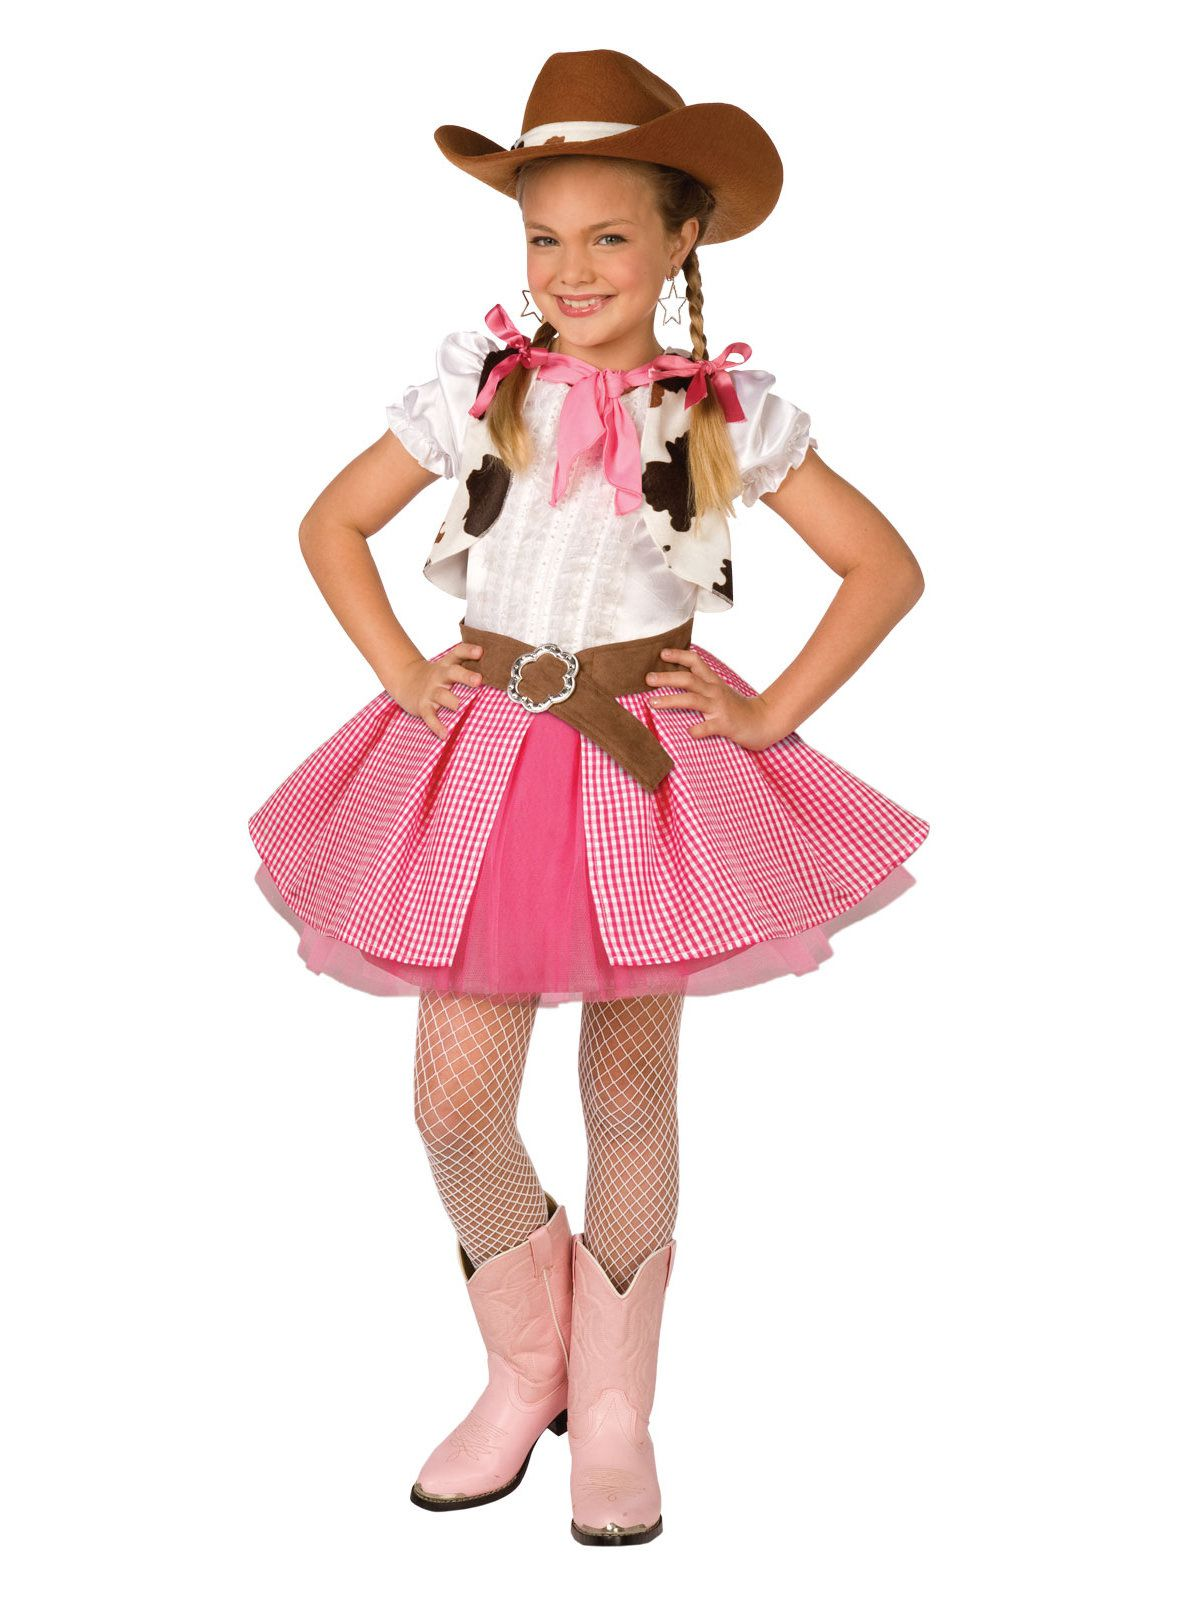 Cowgirl Cutie Child Costume  sc 1 st  Wholesale Halloween Costumes & Cowgirl Cutie Child Costume | Wholesale Halloween Costumes